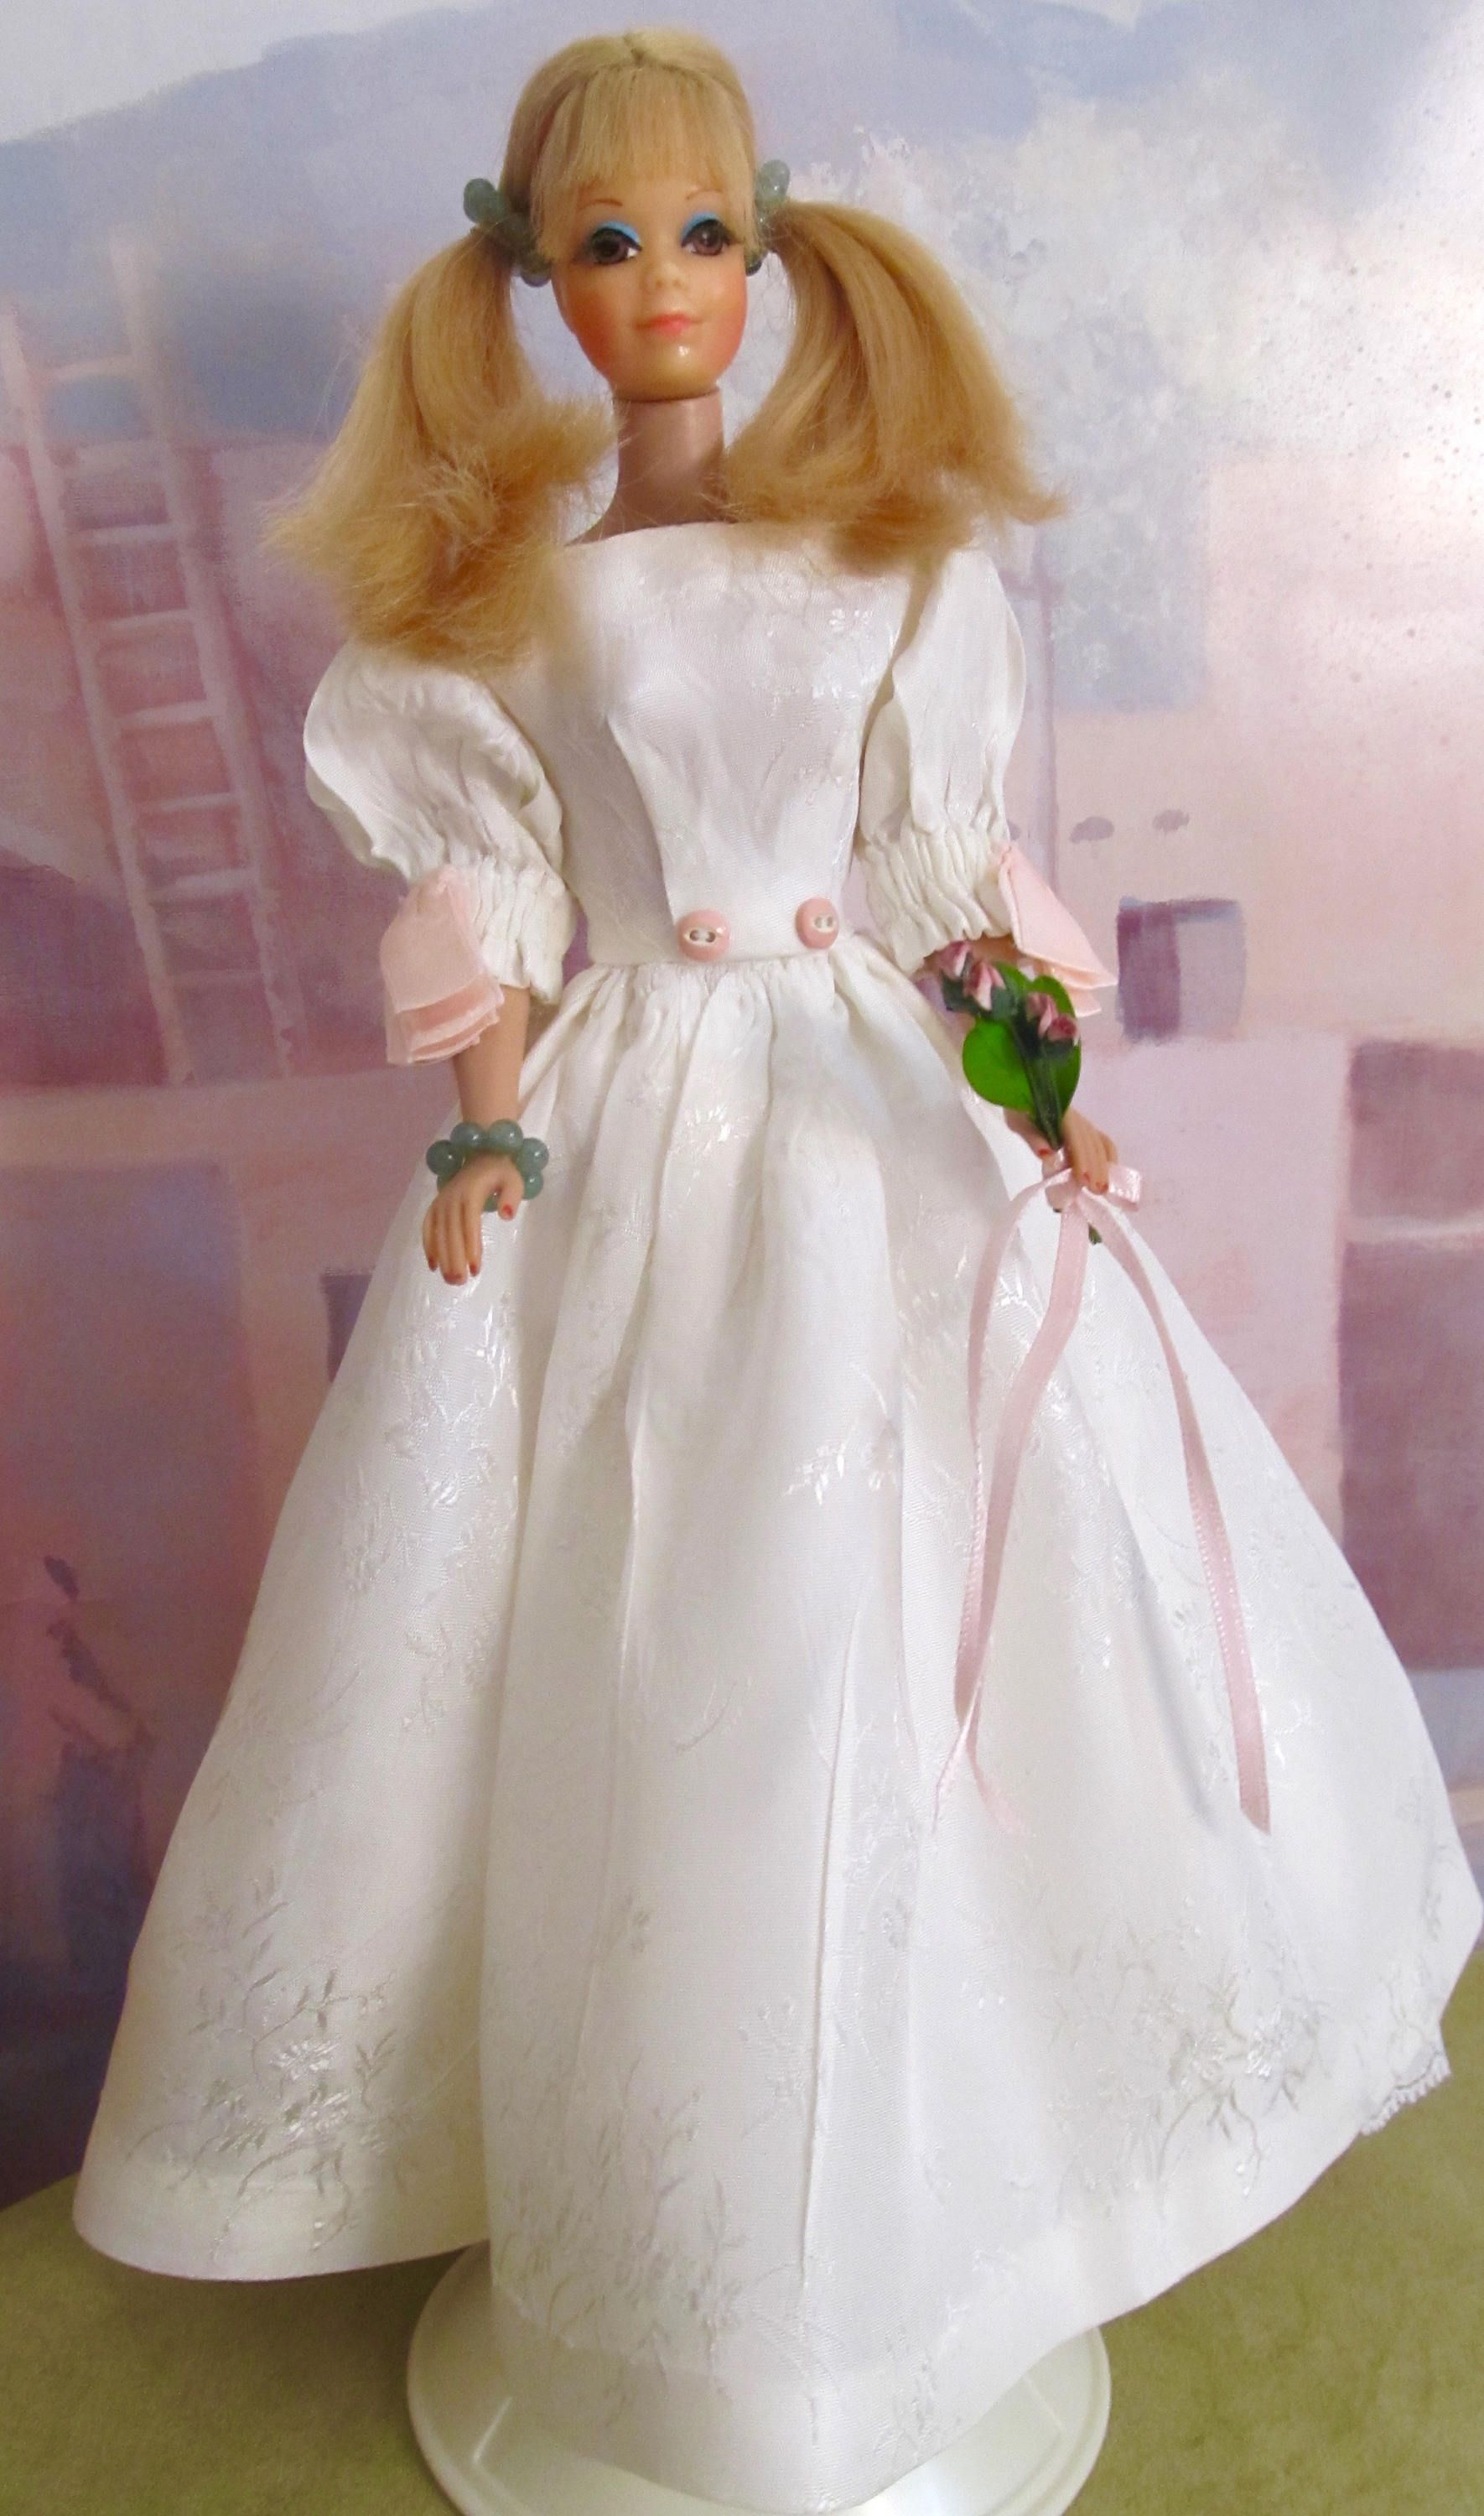 Vintage Barbie Doll Midge Standard Body Mattel 1960s With Pierced Nipples In Modified Gown Bridesmaid: Vintage 1960s Barbie Doll Wedding Dresses At Reisefeber.org